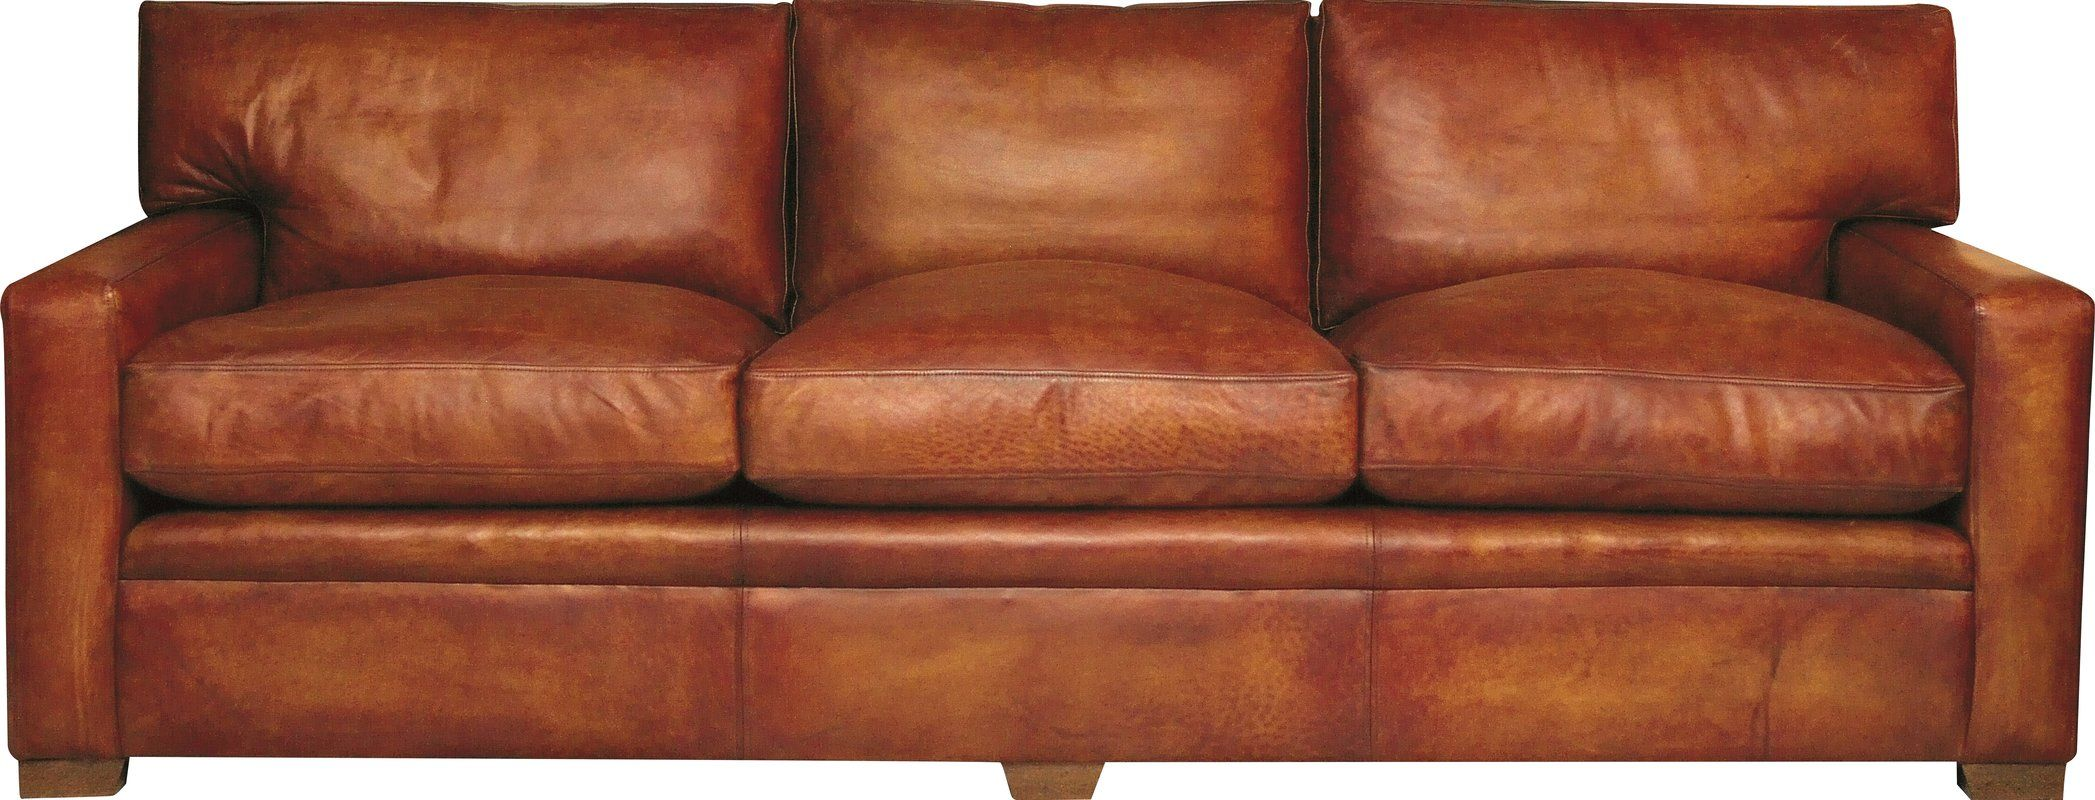 Berry Leather 4 Seater Sofa Clic